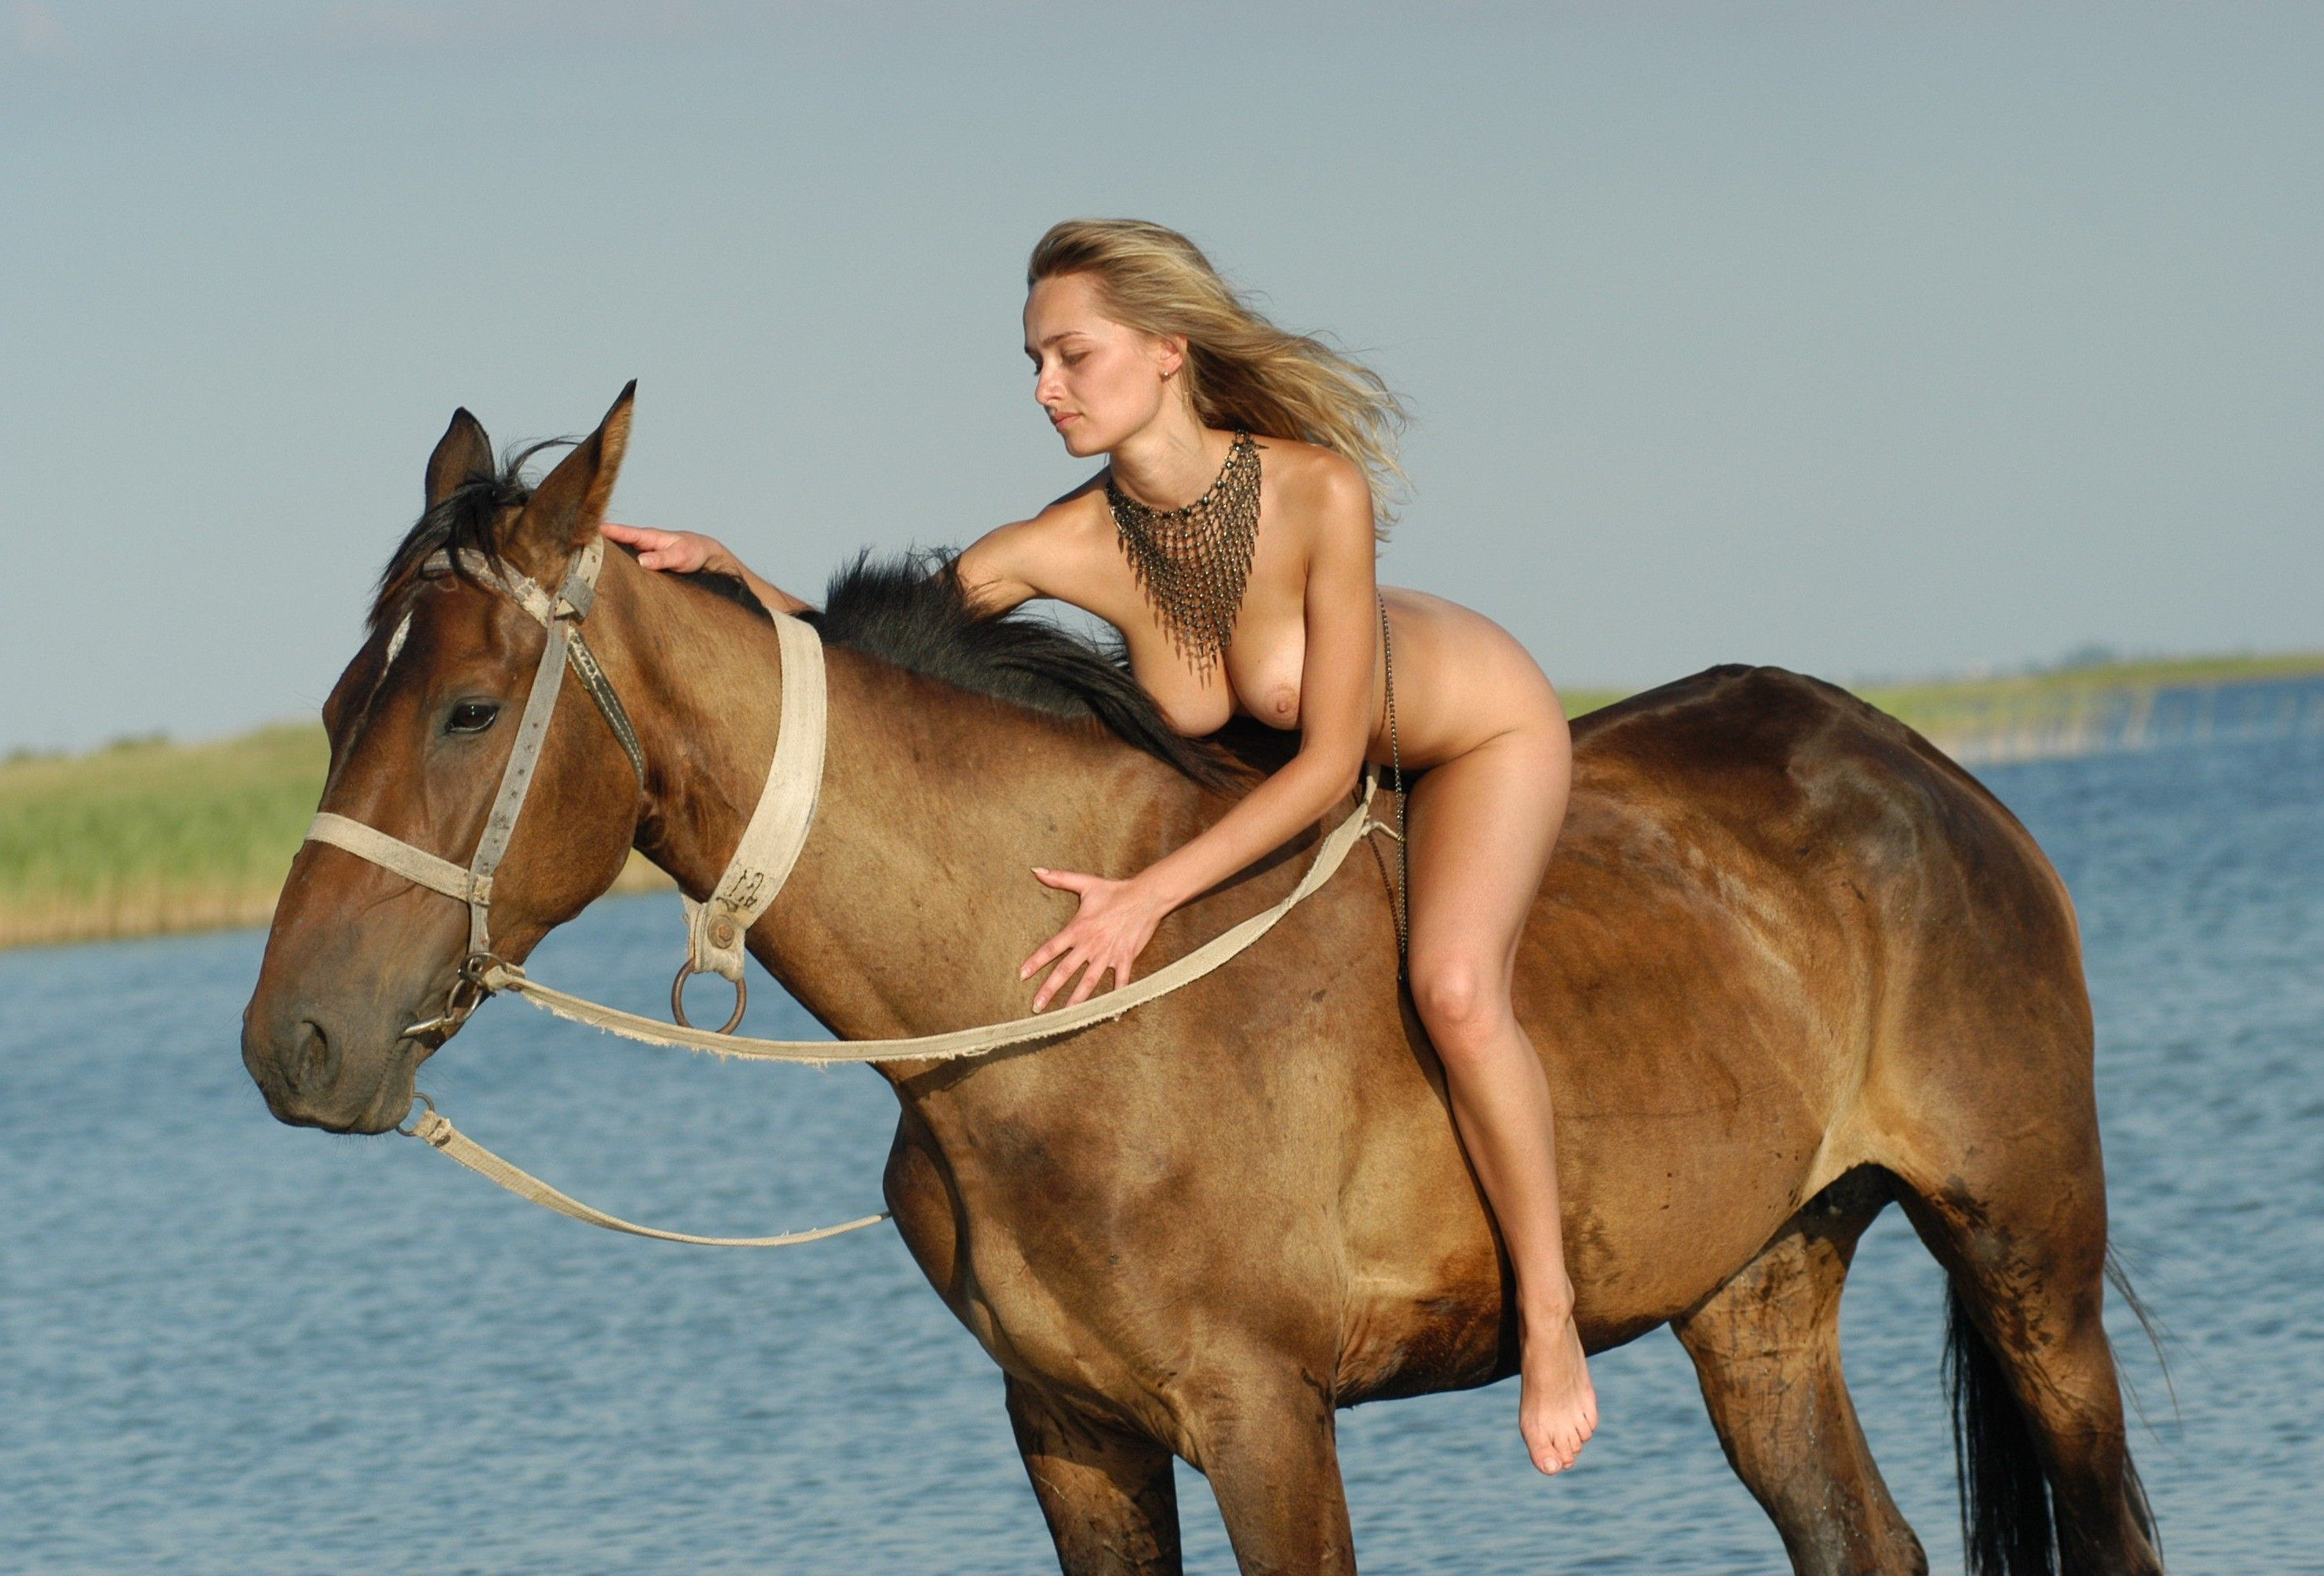 Naked pics of girls riding guys — pic 10